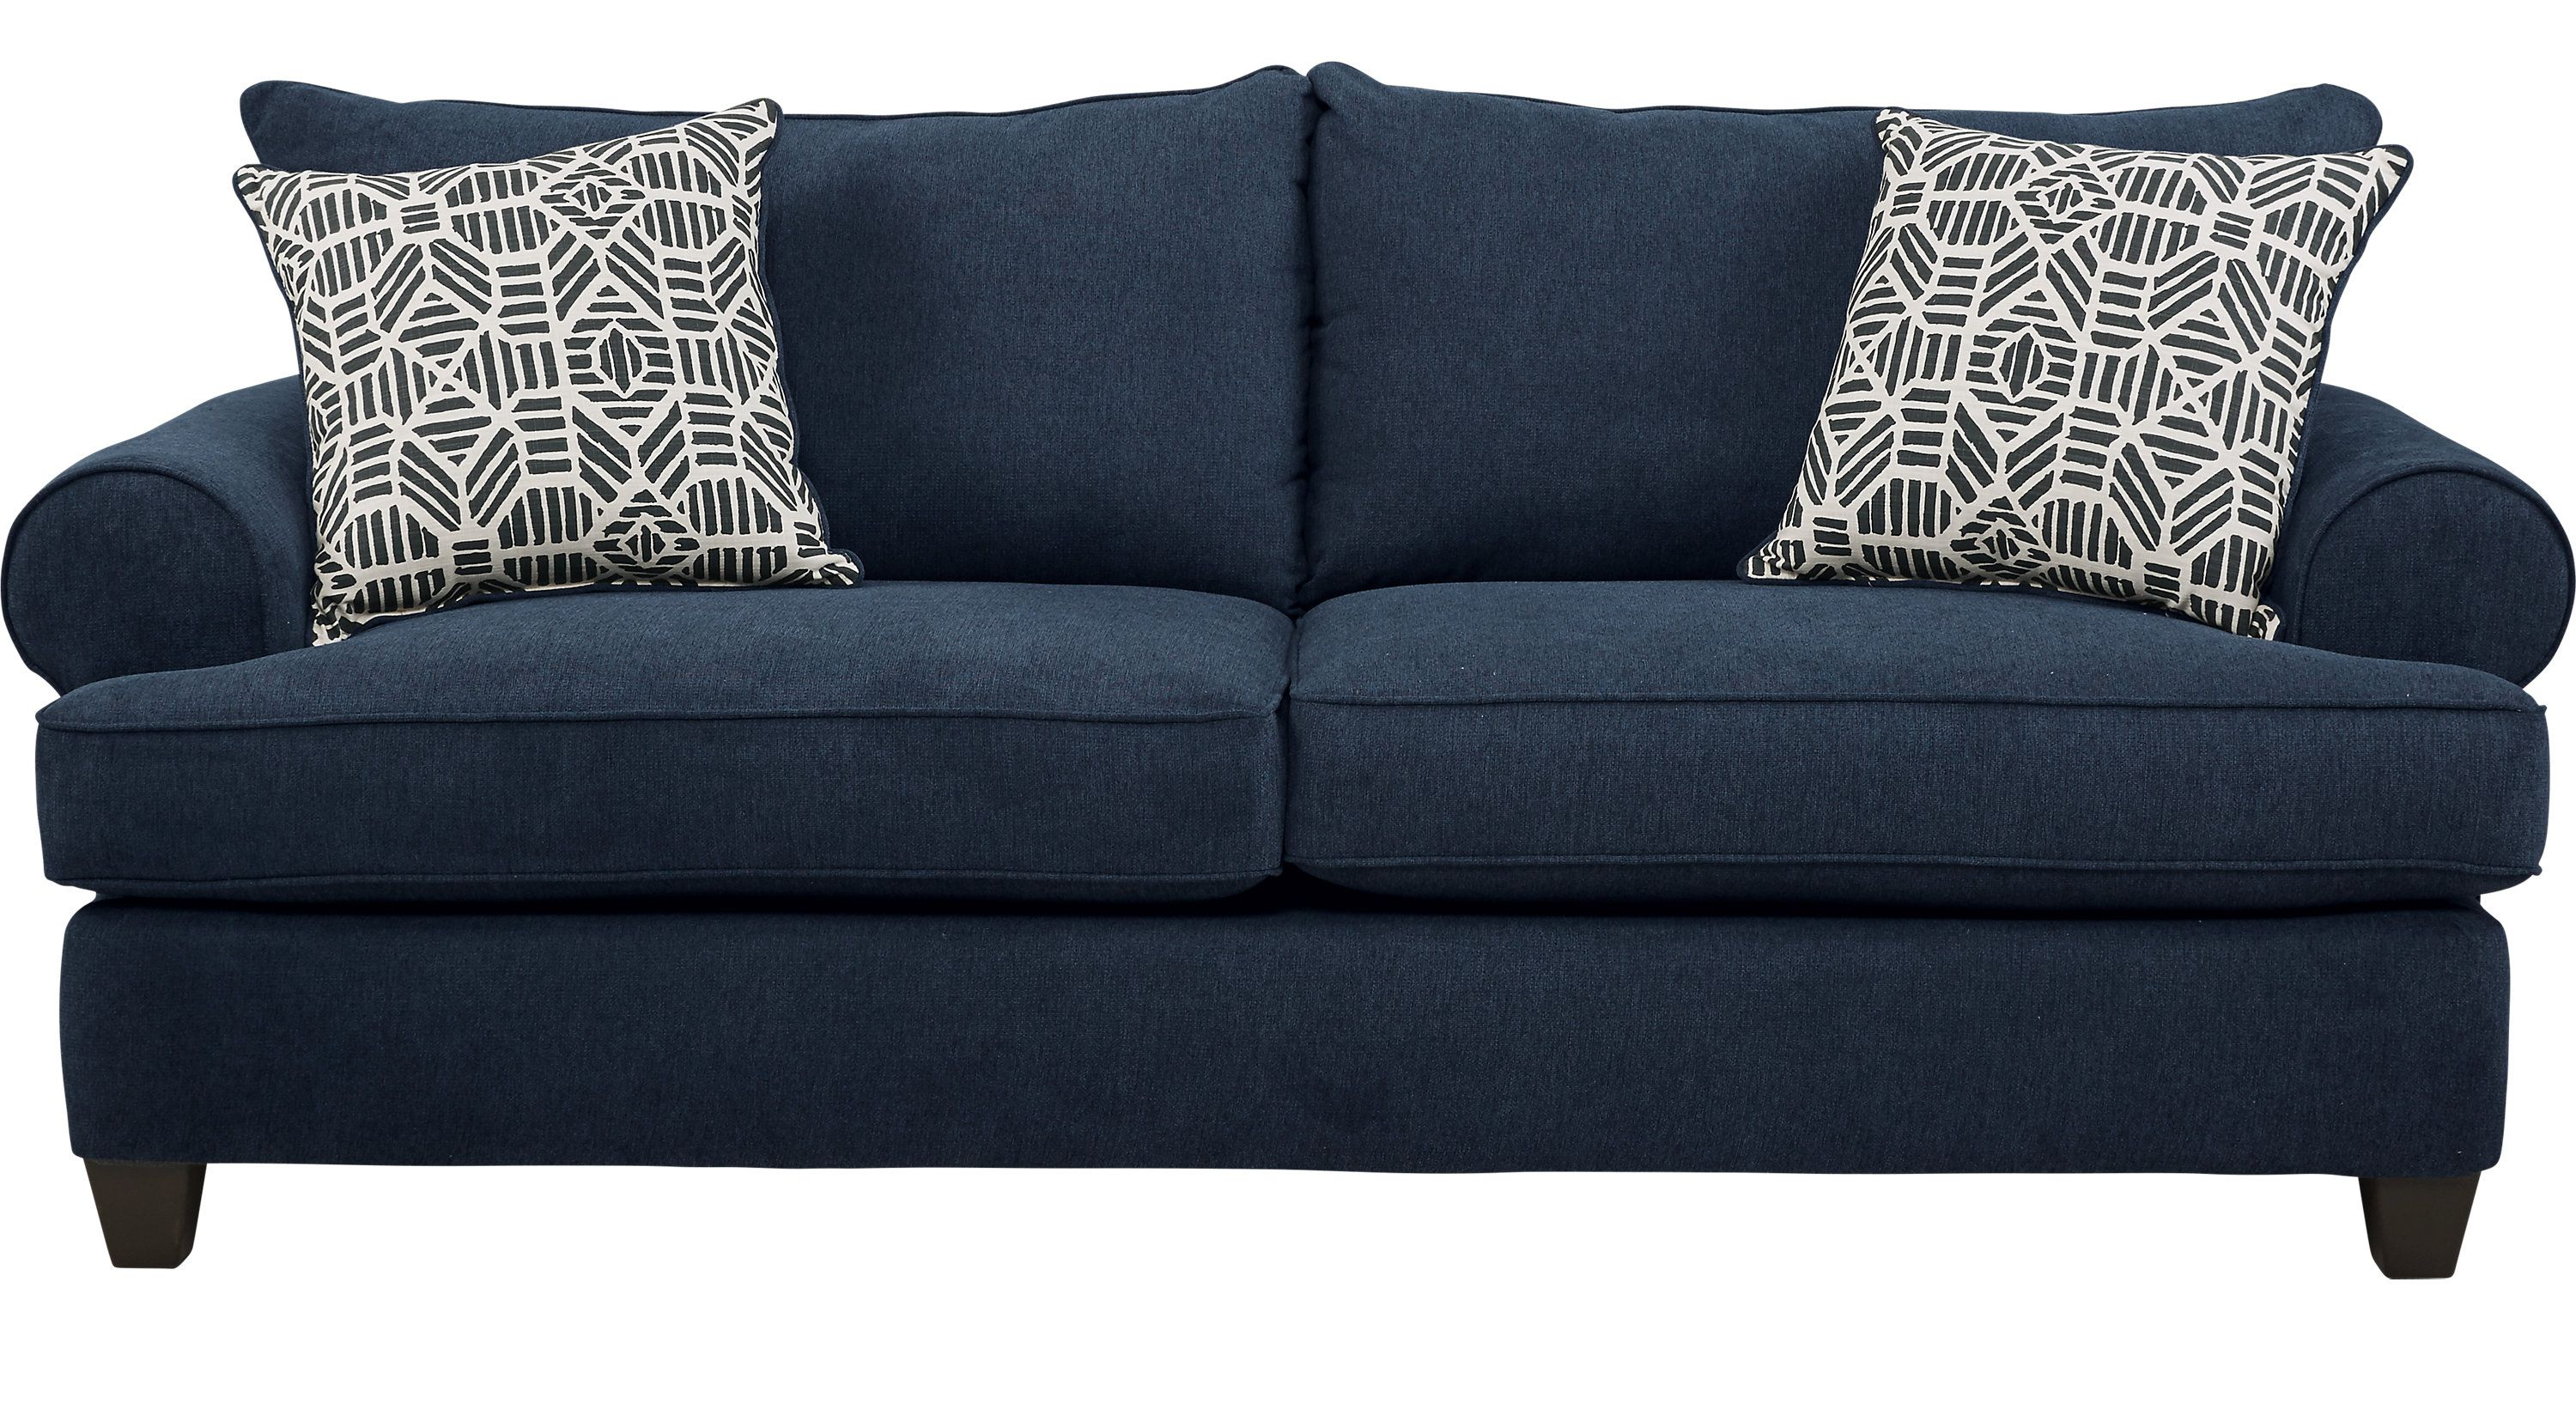 Sleeper Sofas Rooms To Go Emsworth Navy Sleeper 1032908p Navy Sofa Sofa Sleeper Sofa